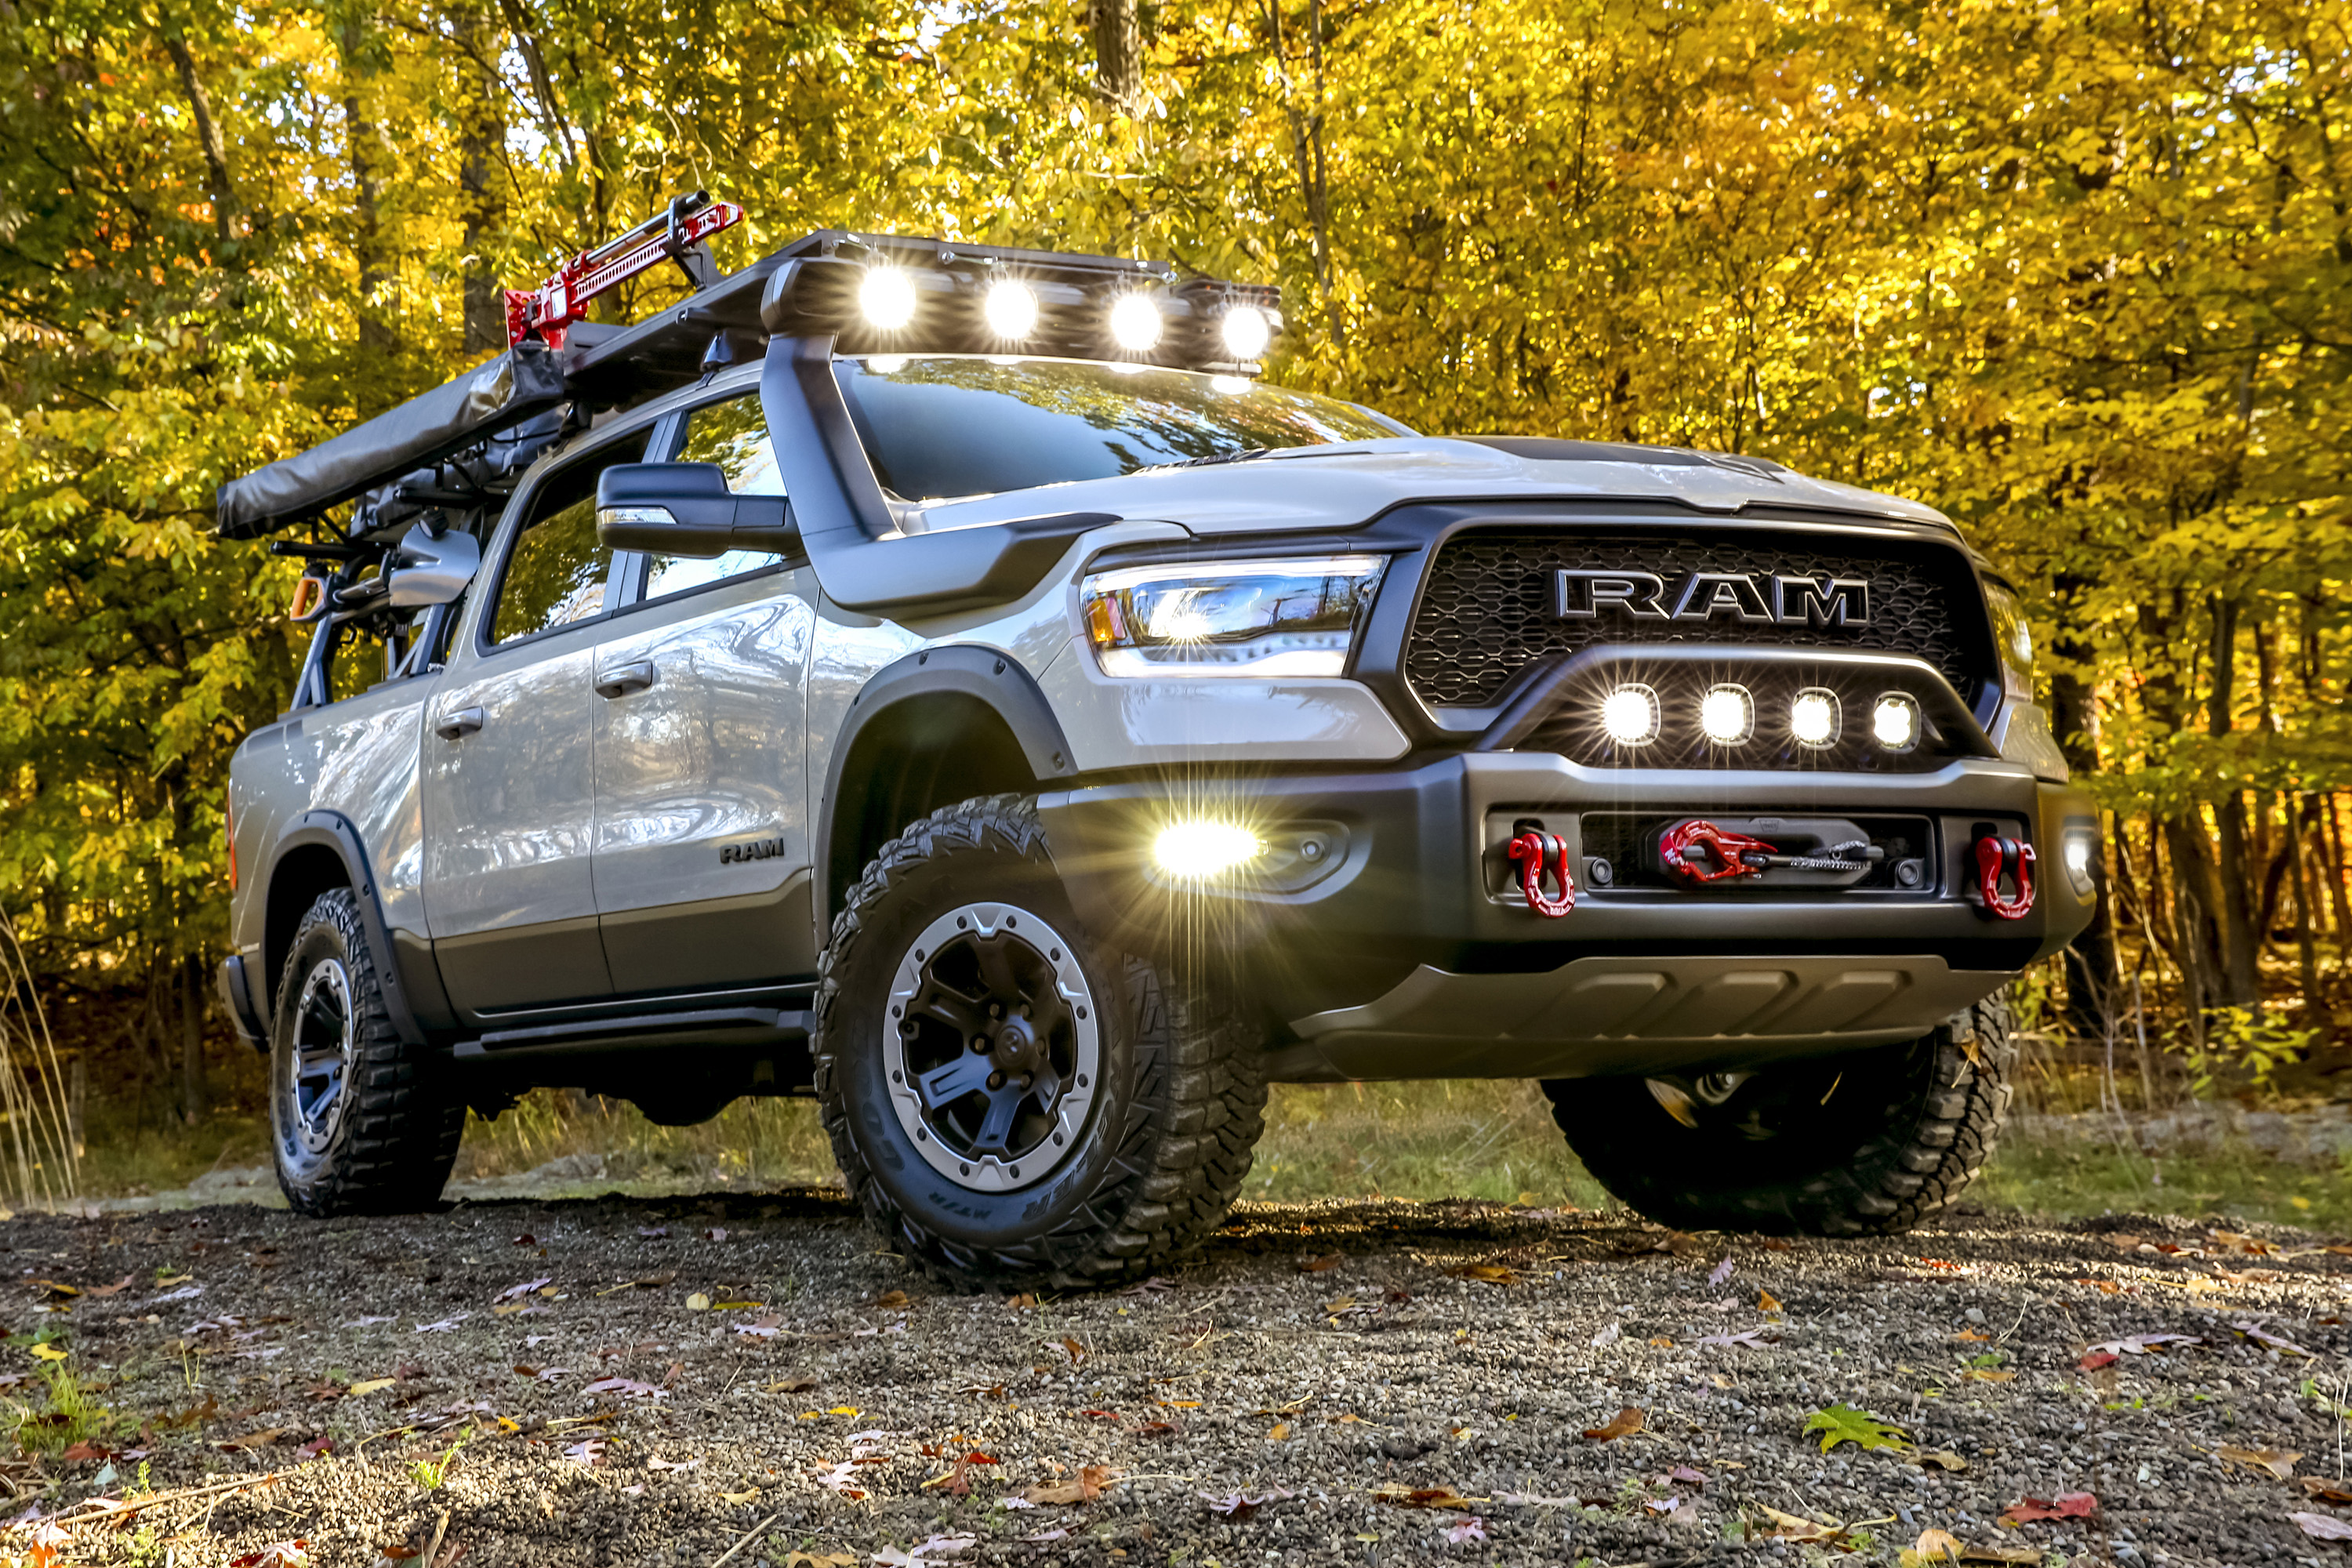 Ram 1500 Accessories >> Cool Accessories For The 2020 Ram 1500 Autotrader